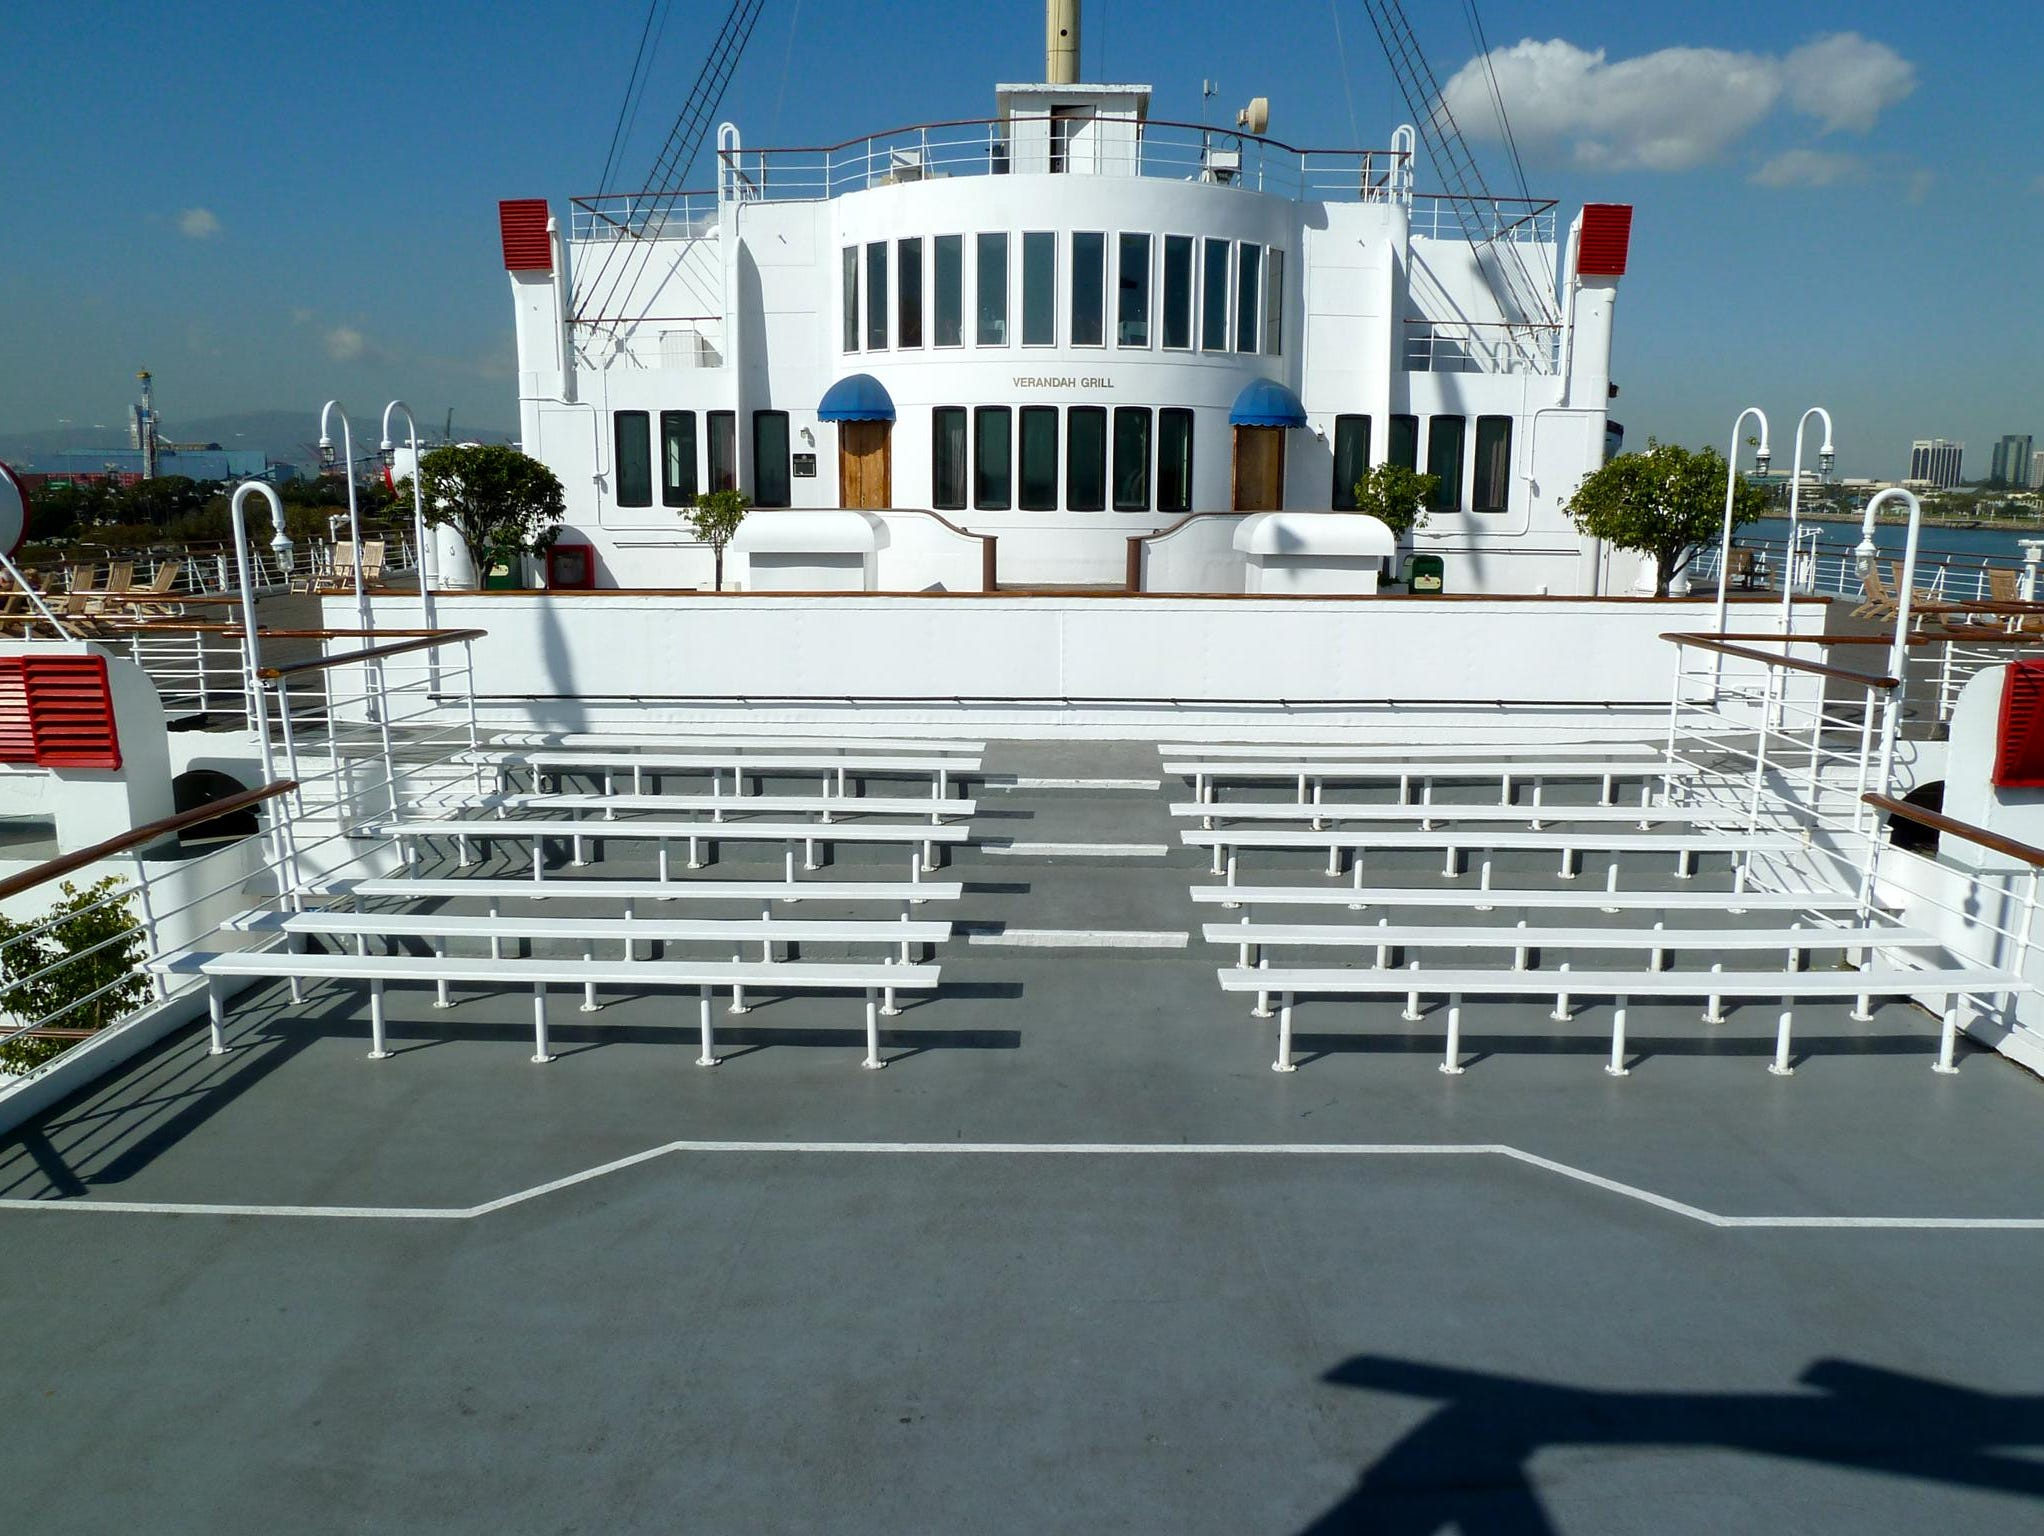 At the far aft end of Sun Deck, a small amphitheater was added in the Long Beach conversion.